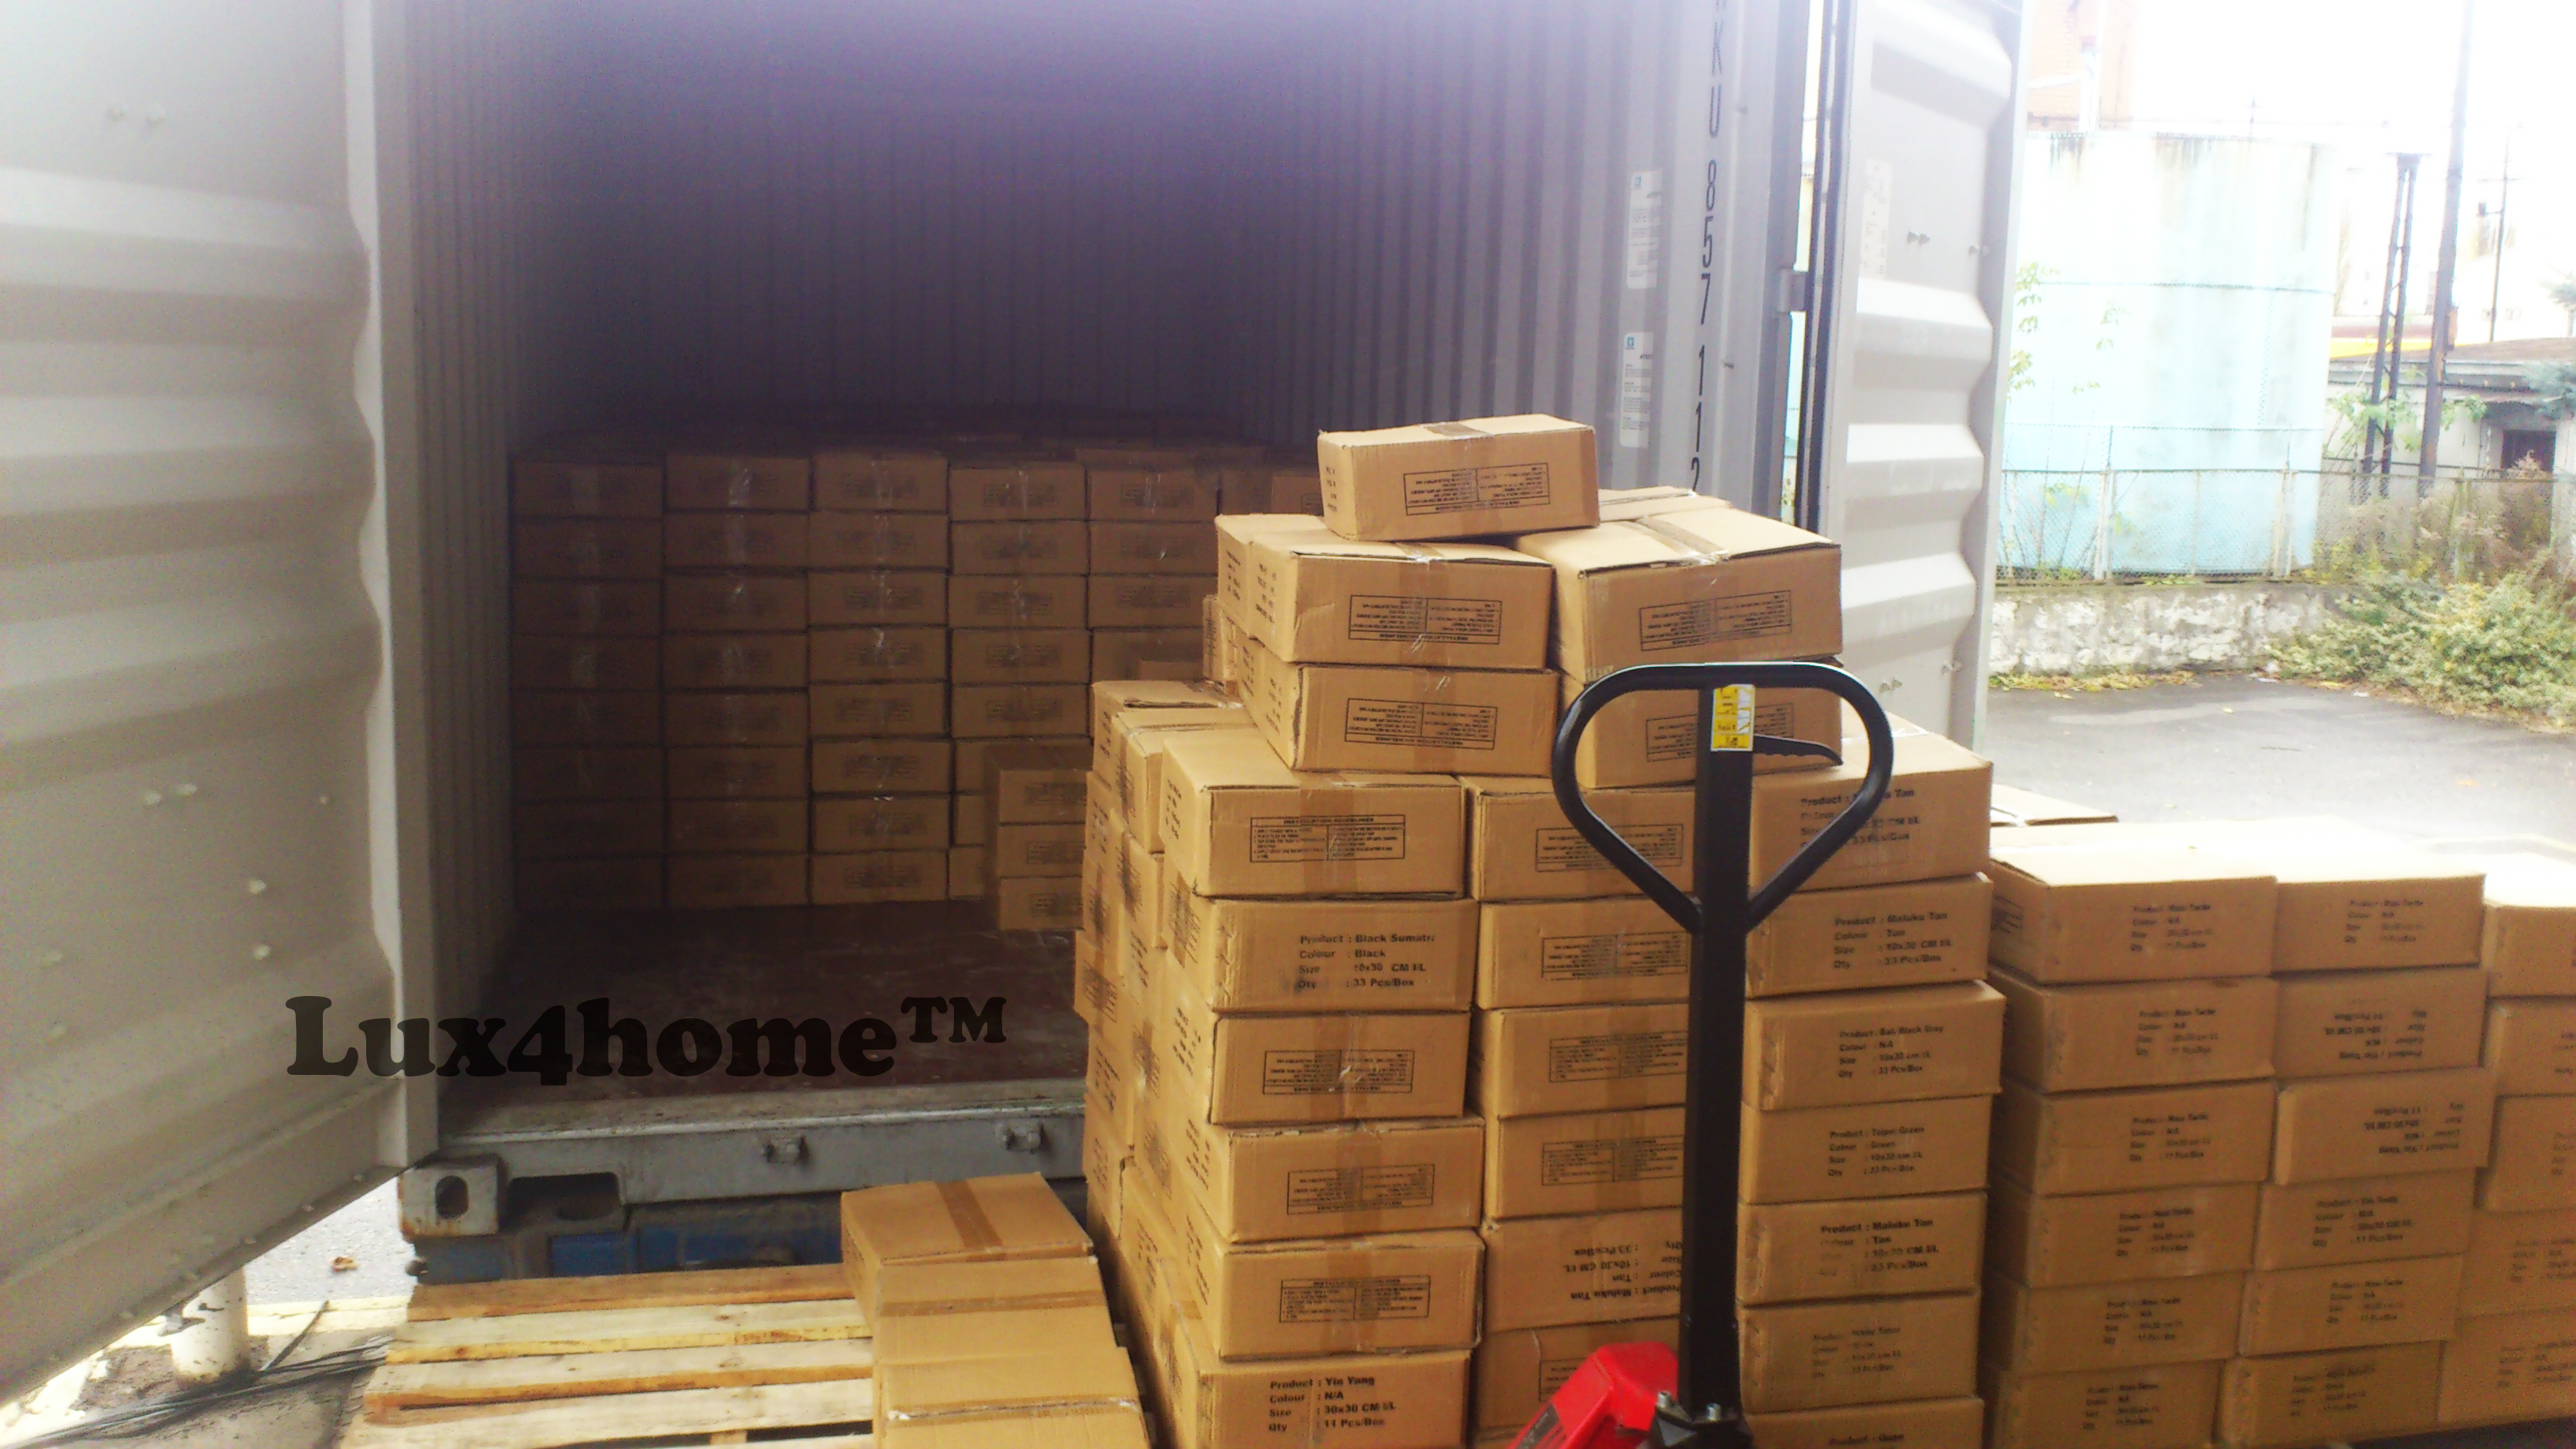 pebble tiles manufacturer - export packaging